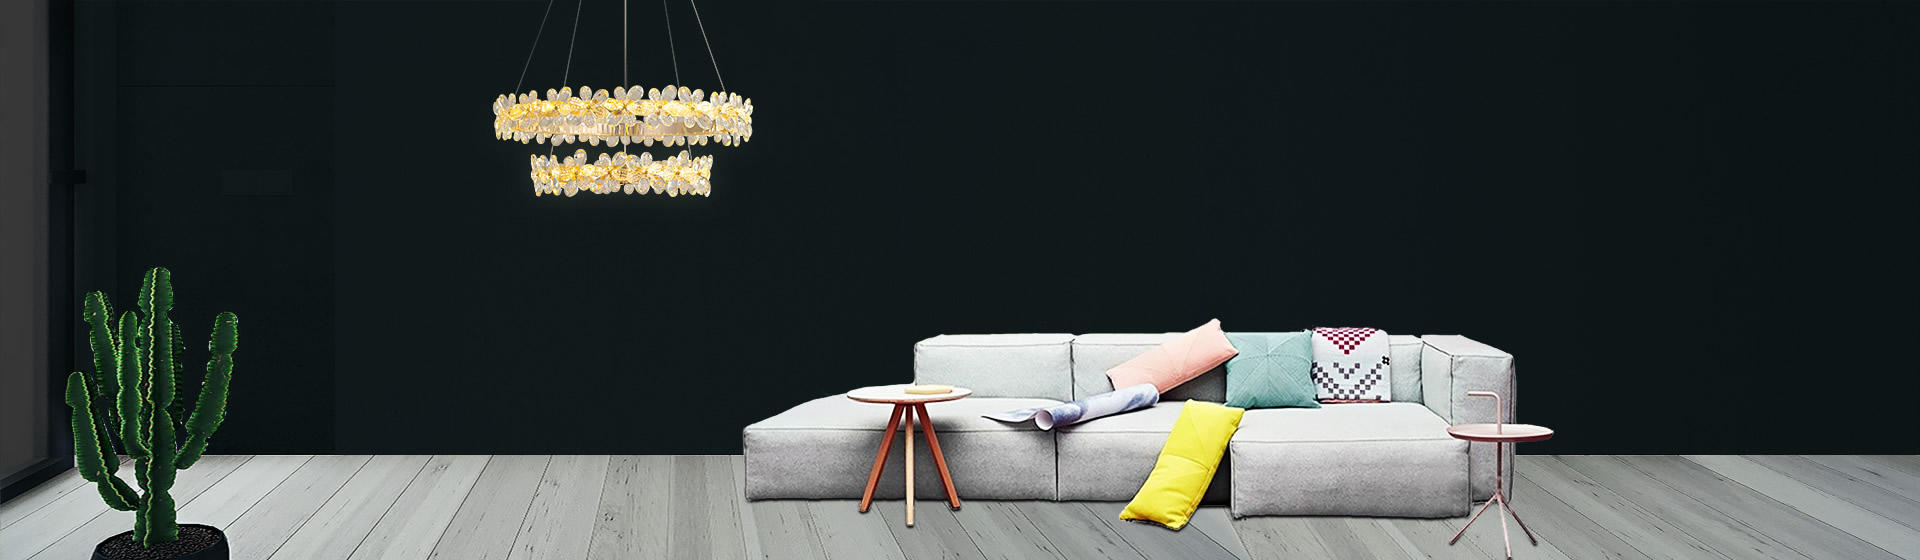 application-CEOU creative modern floor lamps high quality for hotel-CEOU-img